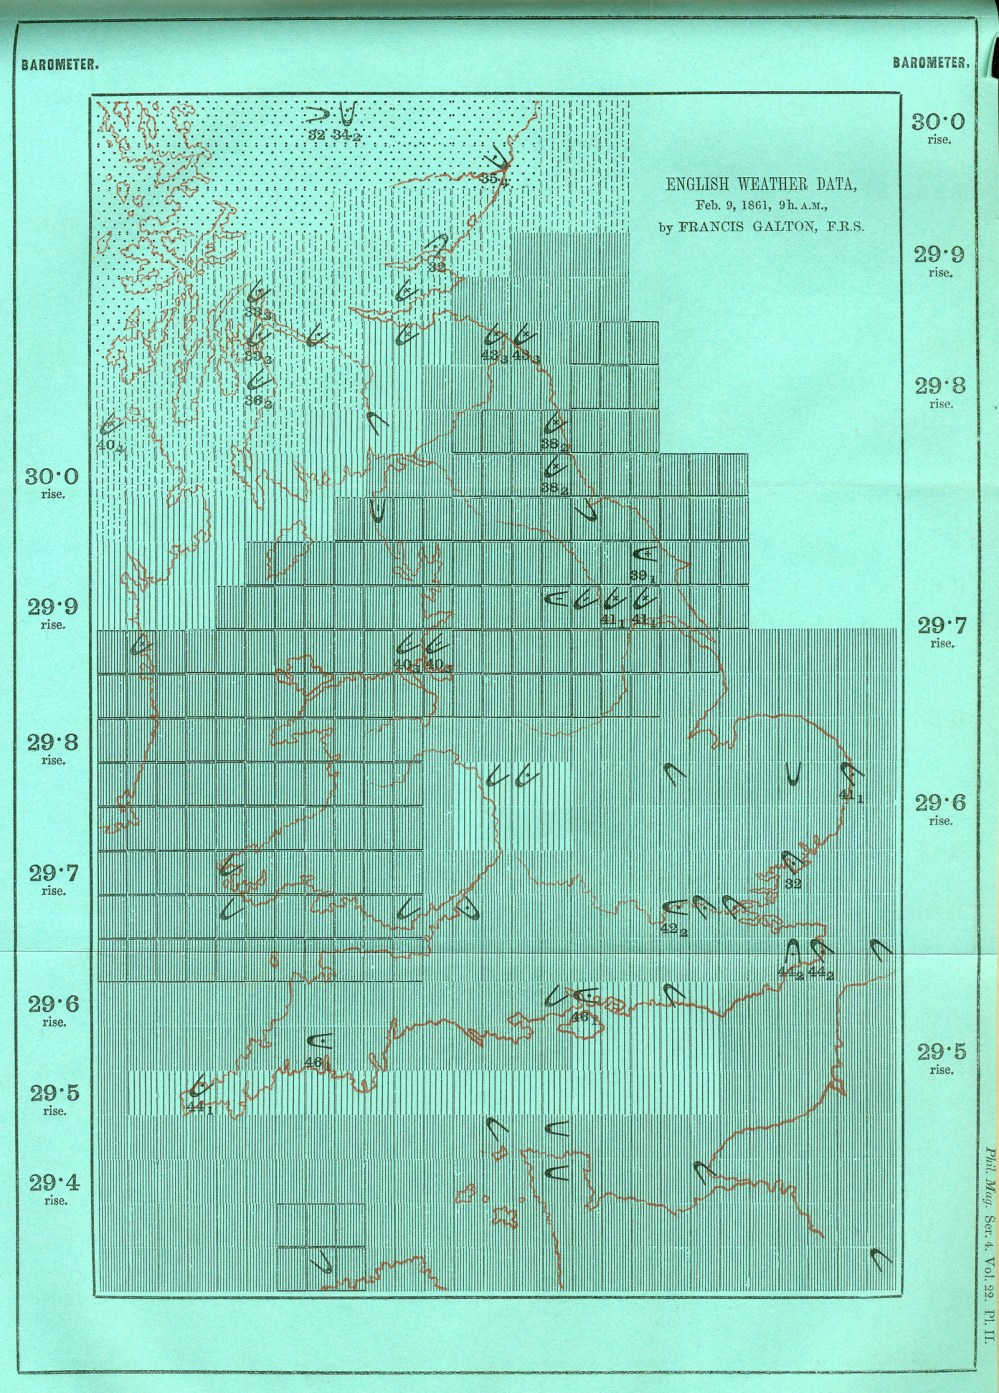 medium resolution of though galton s specific symbols were not adopted his idea gained widespread support compare to the standardized weather maps in today s newspapers